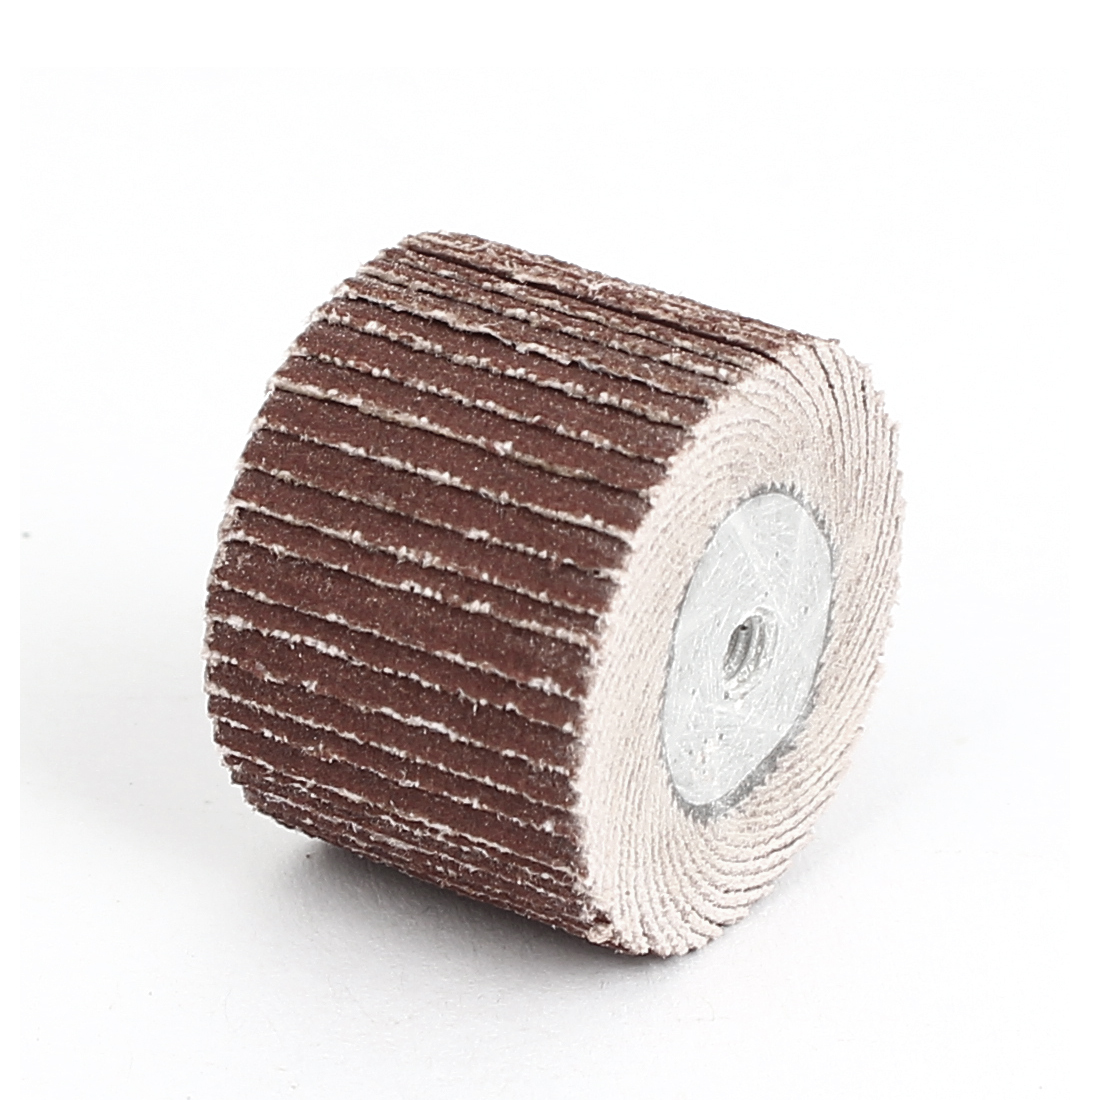 21mmx15mm Sandpaper Grinding Mounted Point Flap Wheel